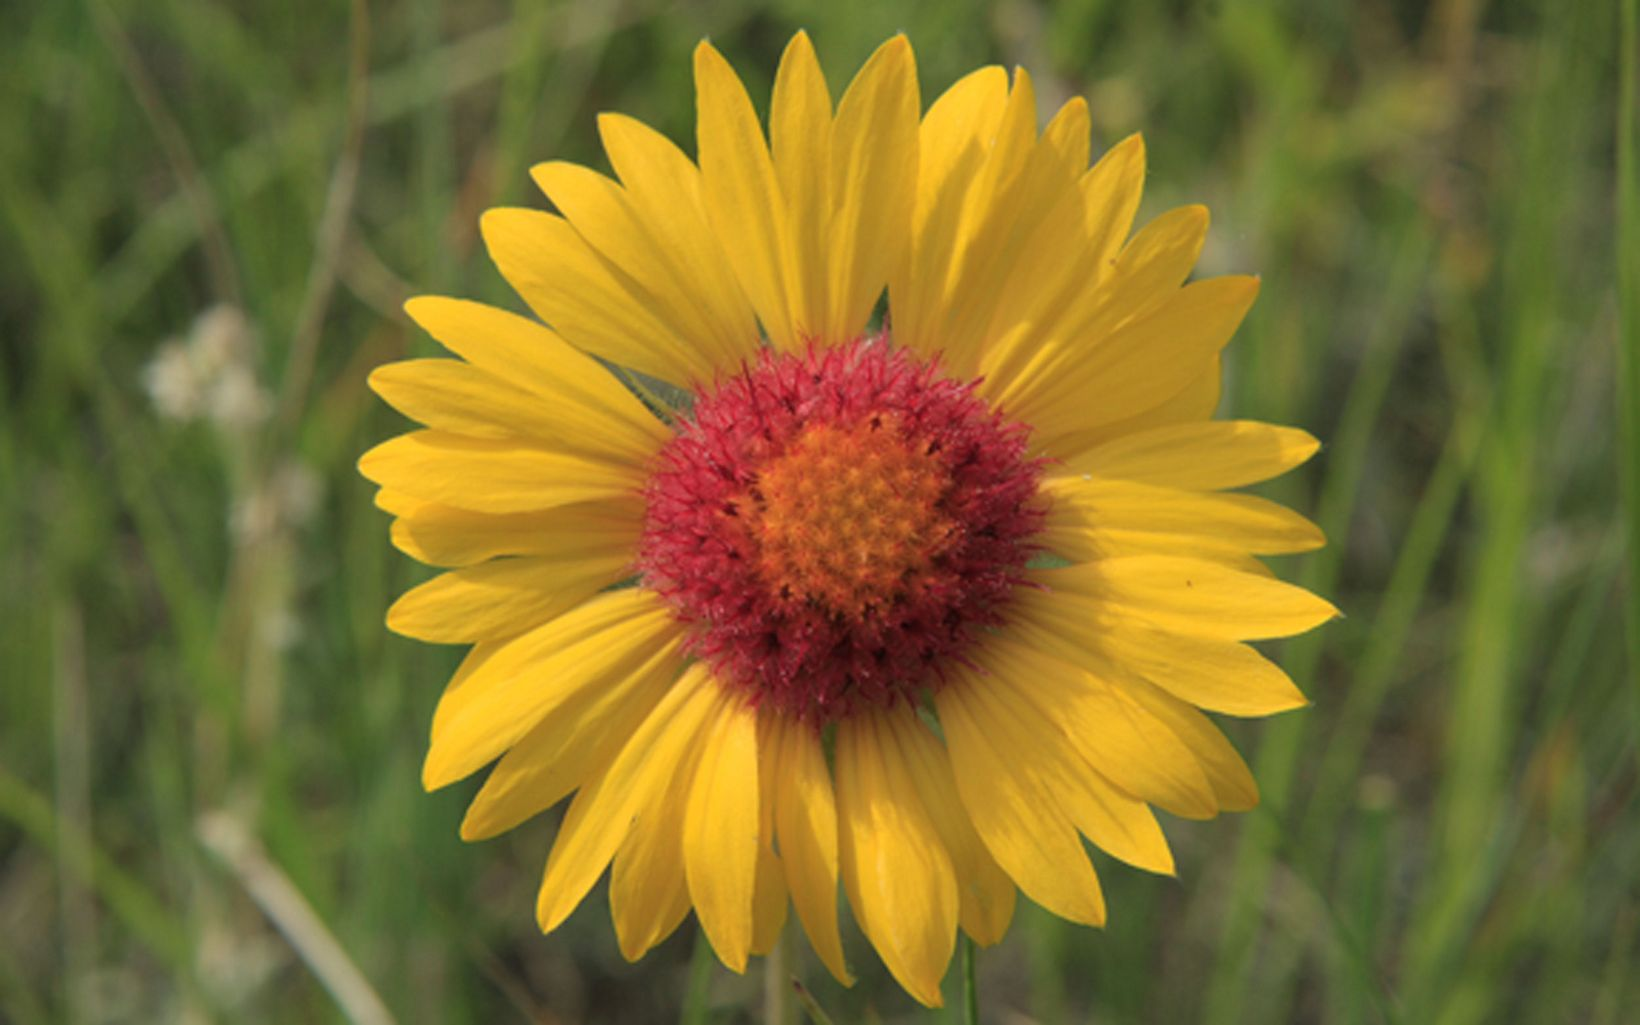 Part of the sunflower family, Gaillardia flowers are typically bright red with yellow tips.